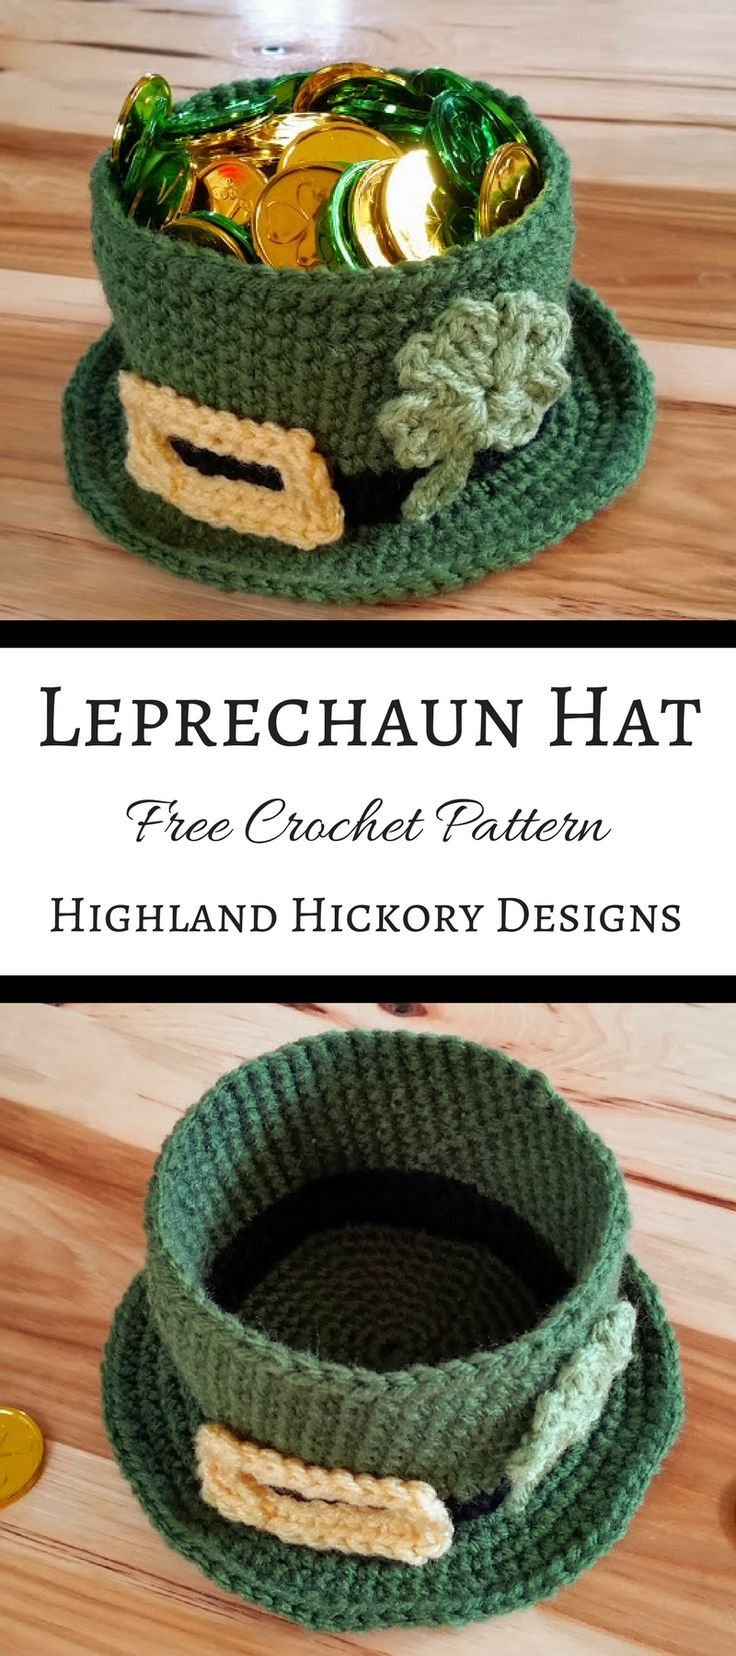 Crochet this Leprechaun hat that is shaped like a bowl! It's large enough to fit a candle inside or holiday treats! This is an easy and free St. Patrick's Day crochet pattern. Cute table topper or teacher gift.